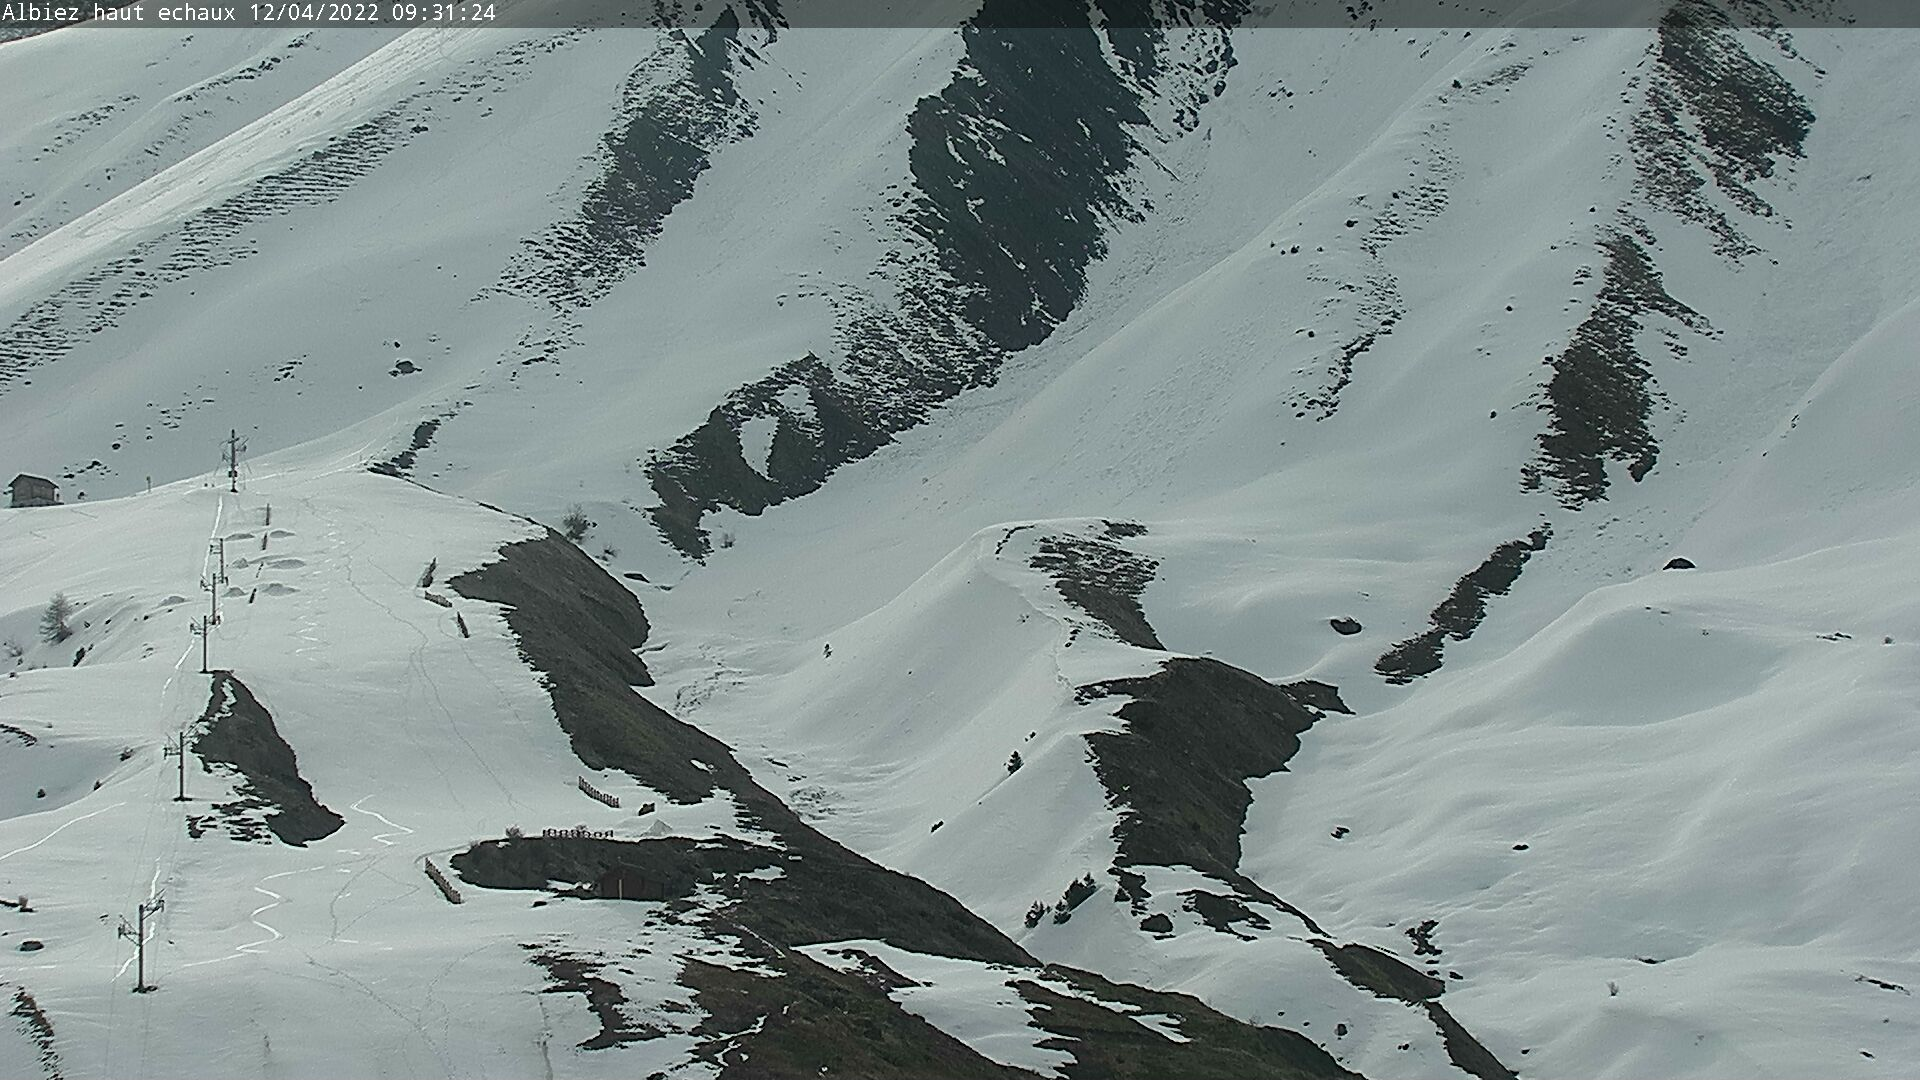 Webcam du bas du Grand Loup / bas de station